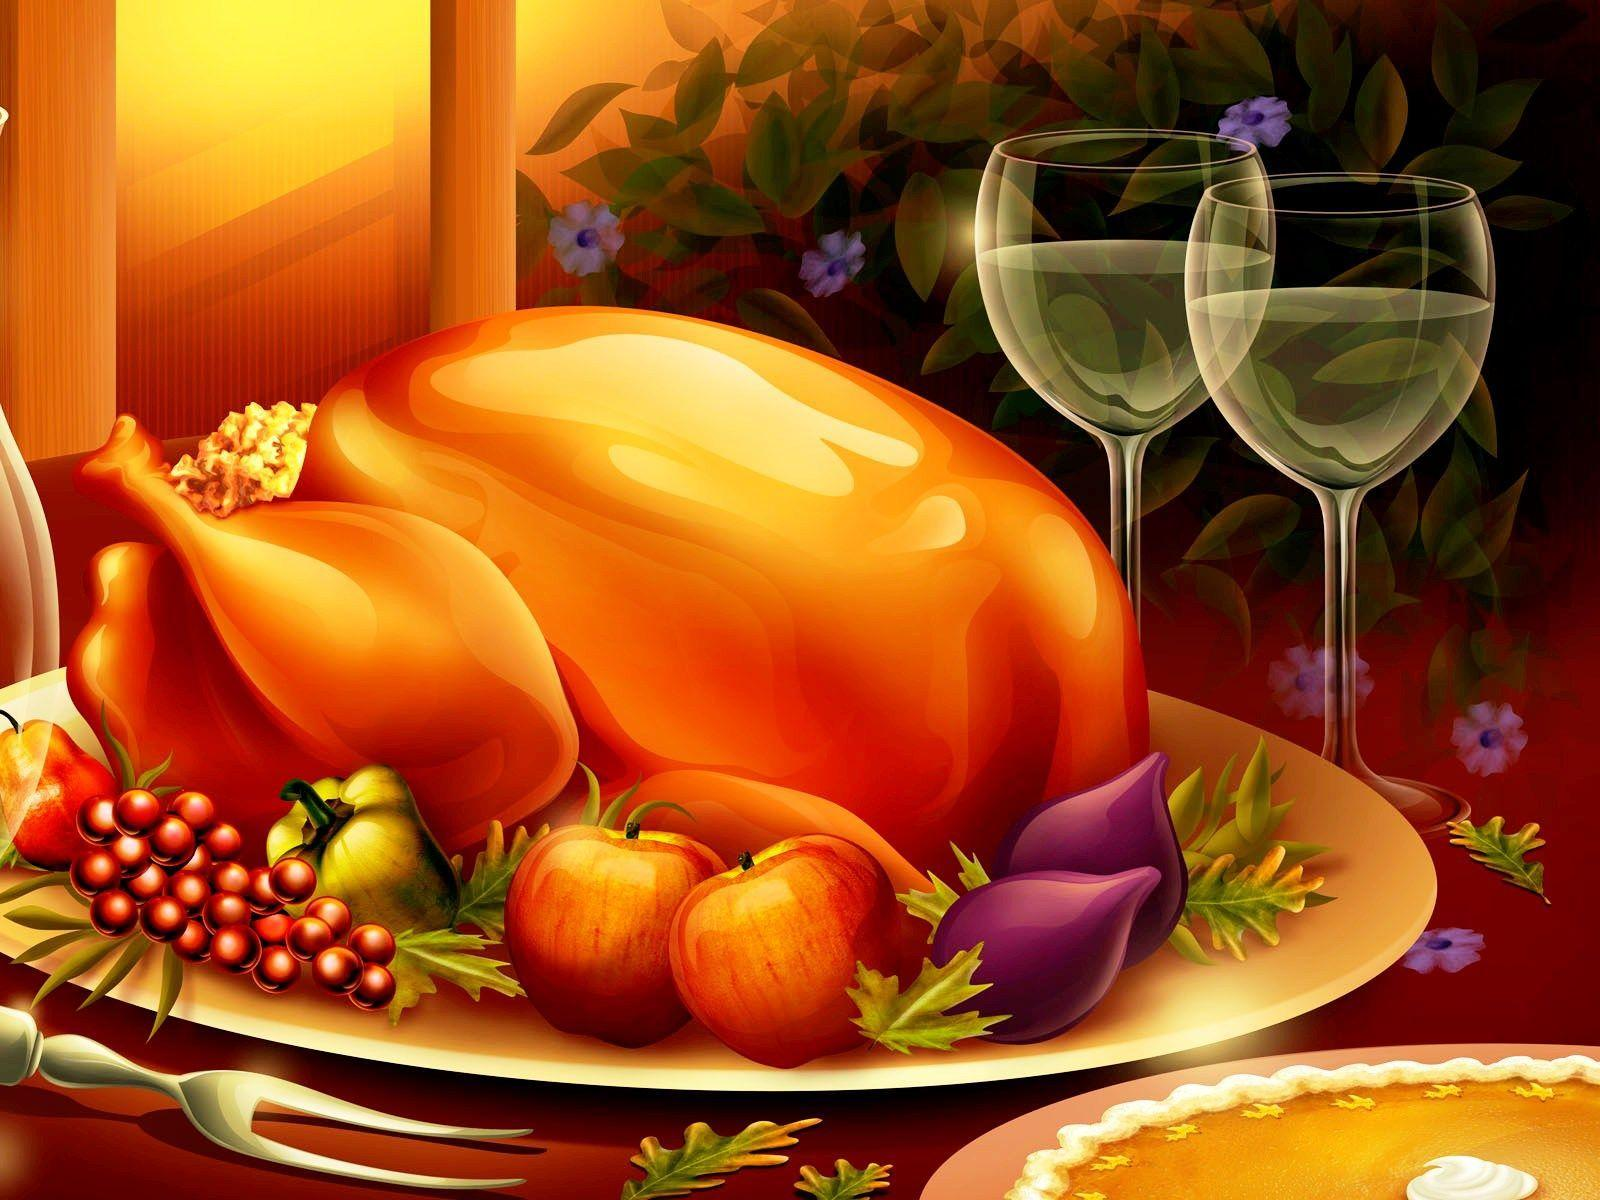 Thanksgiving HD Wallpapers Wallpaper | HD Wallpapers | Pinterest ...